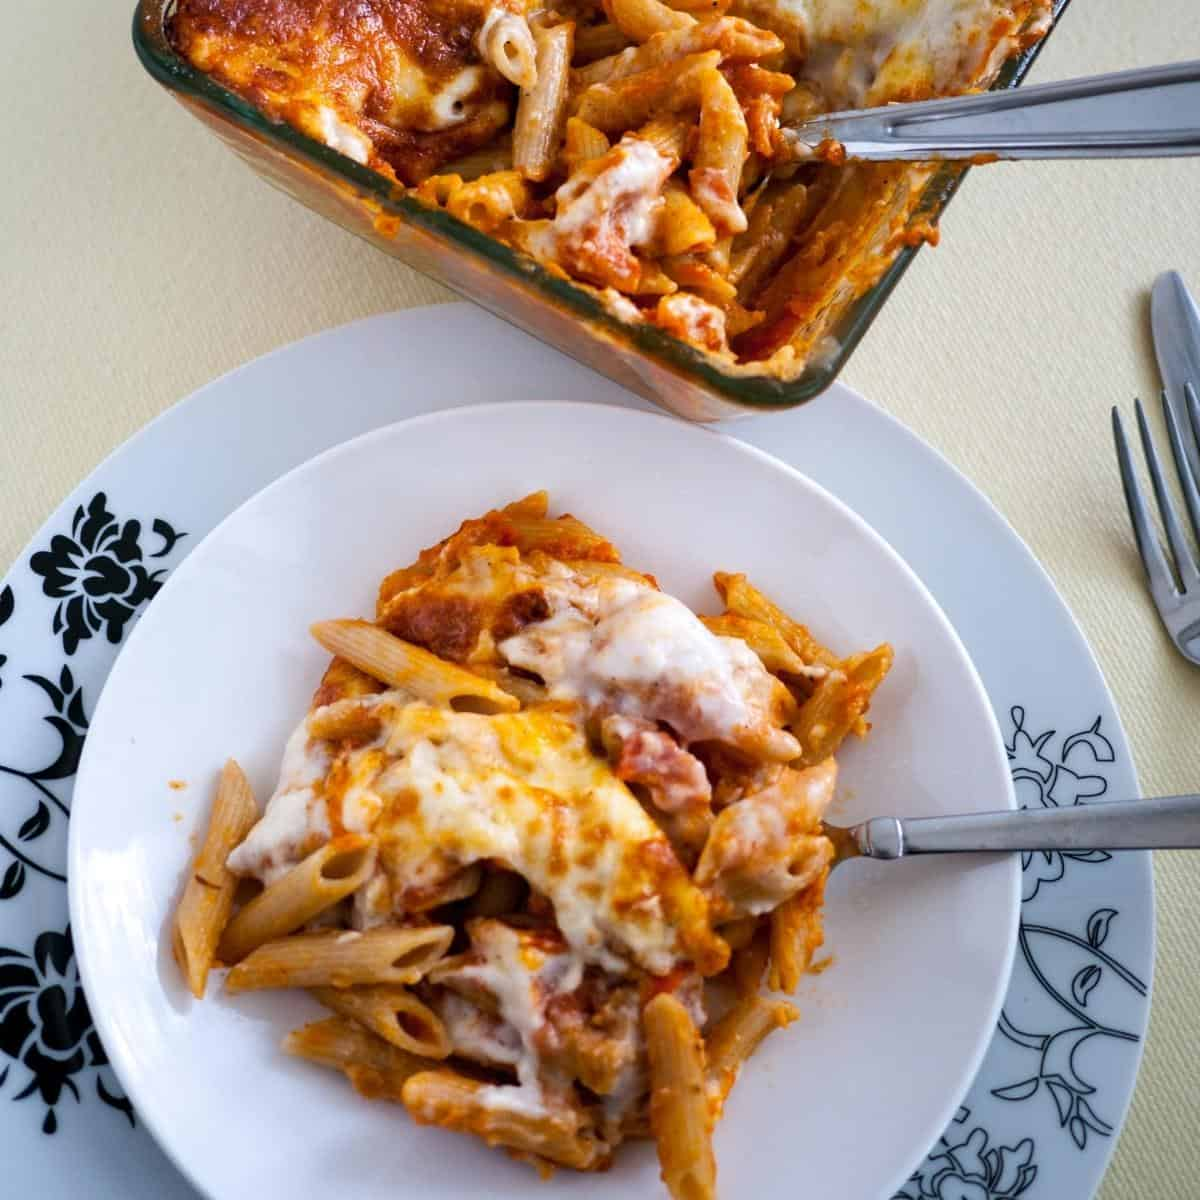 Penne lasagna on a plate.